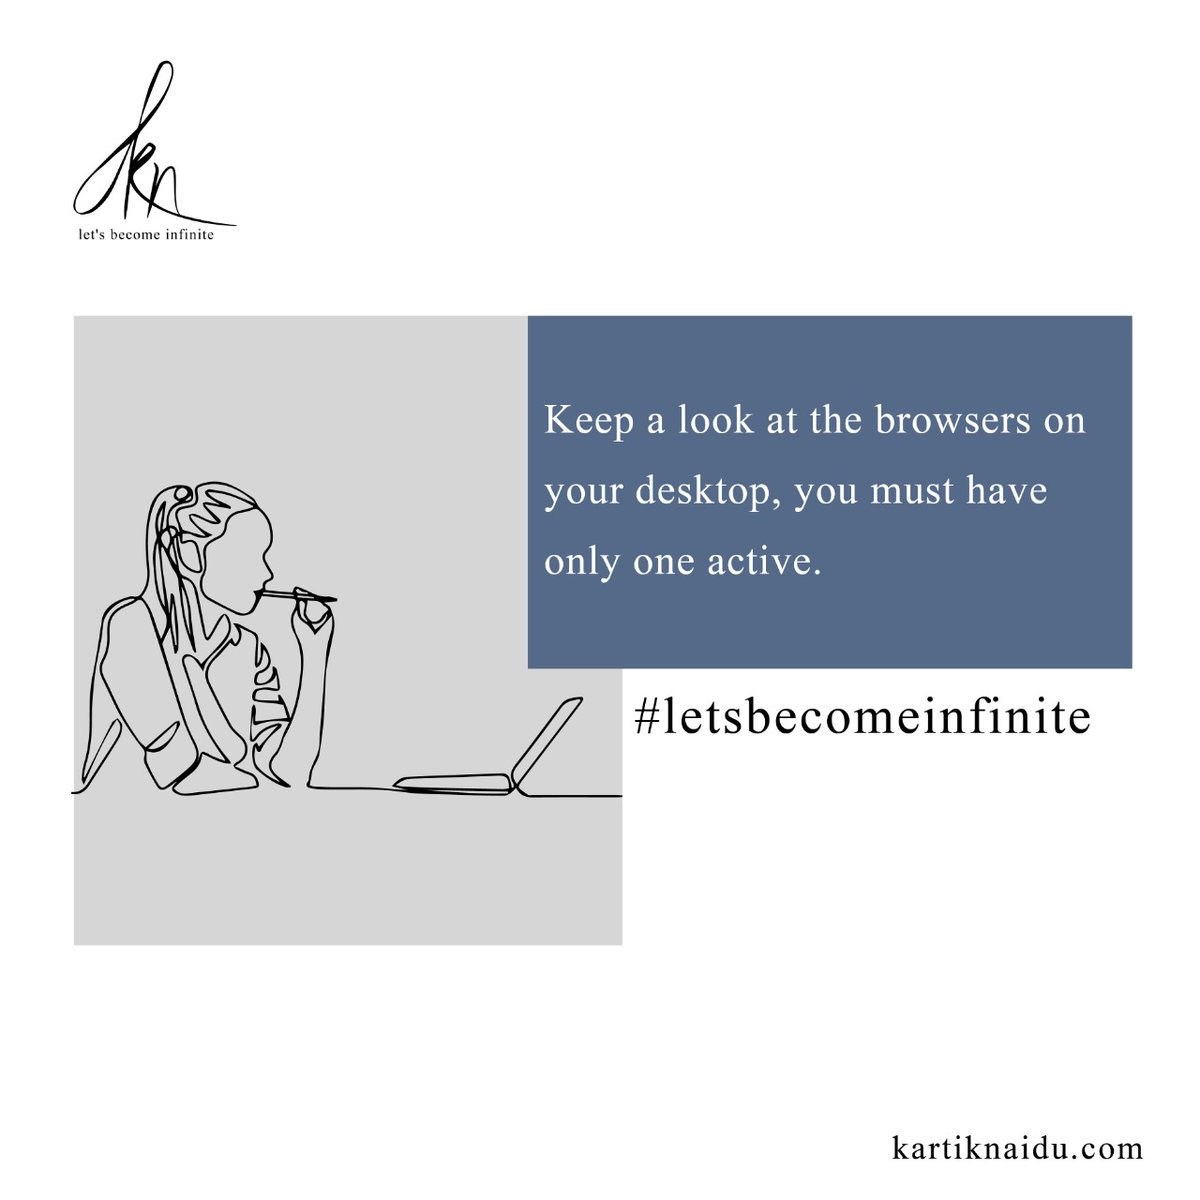 Control your distractions. Single tasking can be very effective. #letsbecomeinfinite  #productivity #motivation #business #success #entrepreneur #timemanagement #productivitytips #goals #smallbusiness #inspiration #studygram #covid #marketing #workfromhome https://t.co/ah2rhN8jax